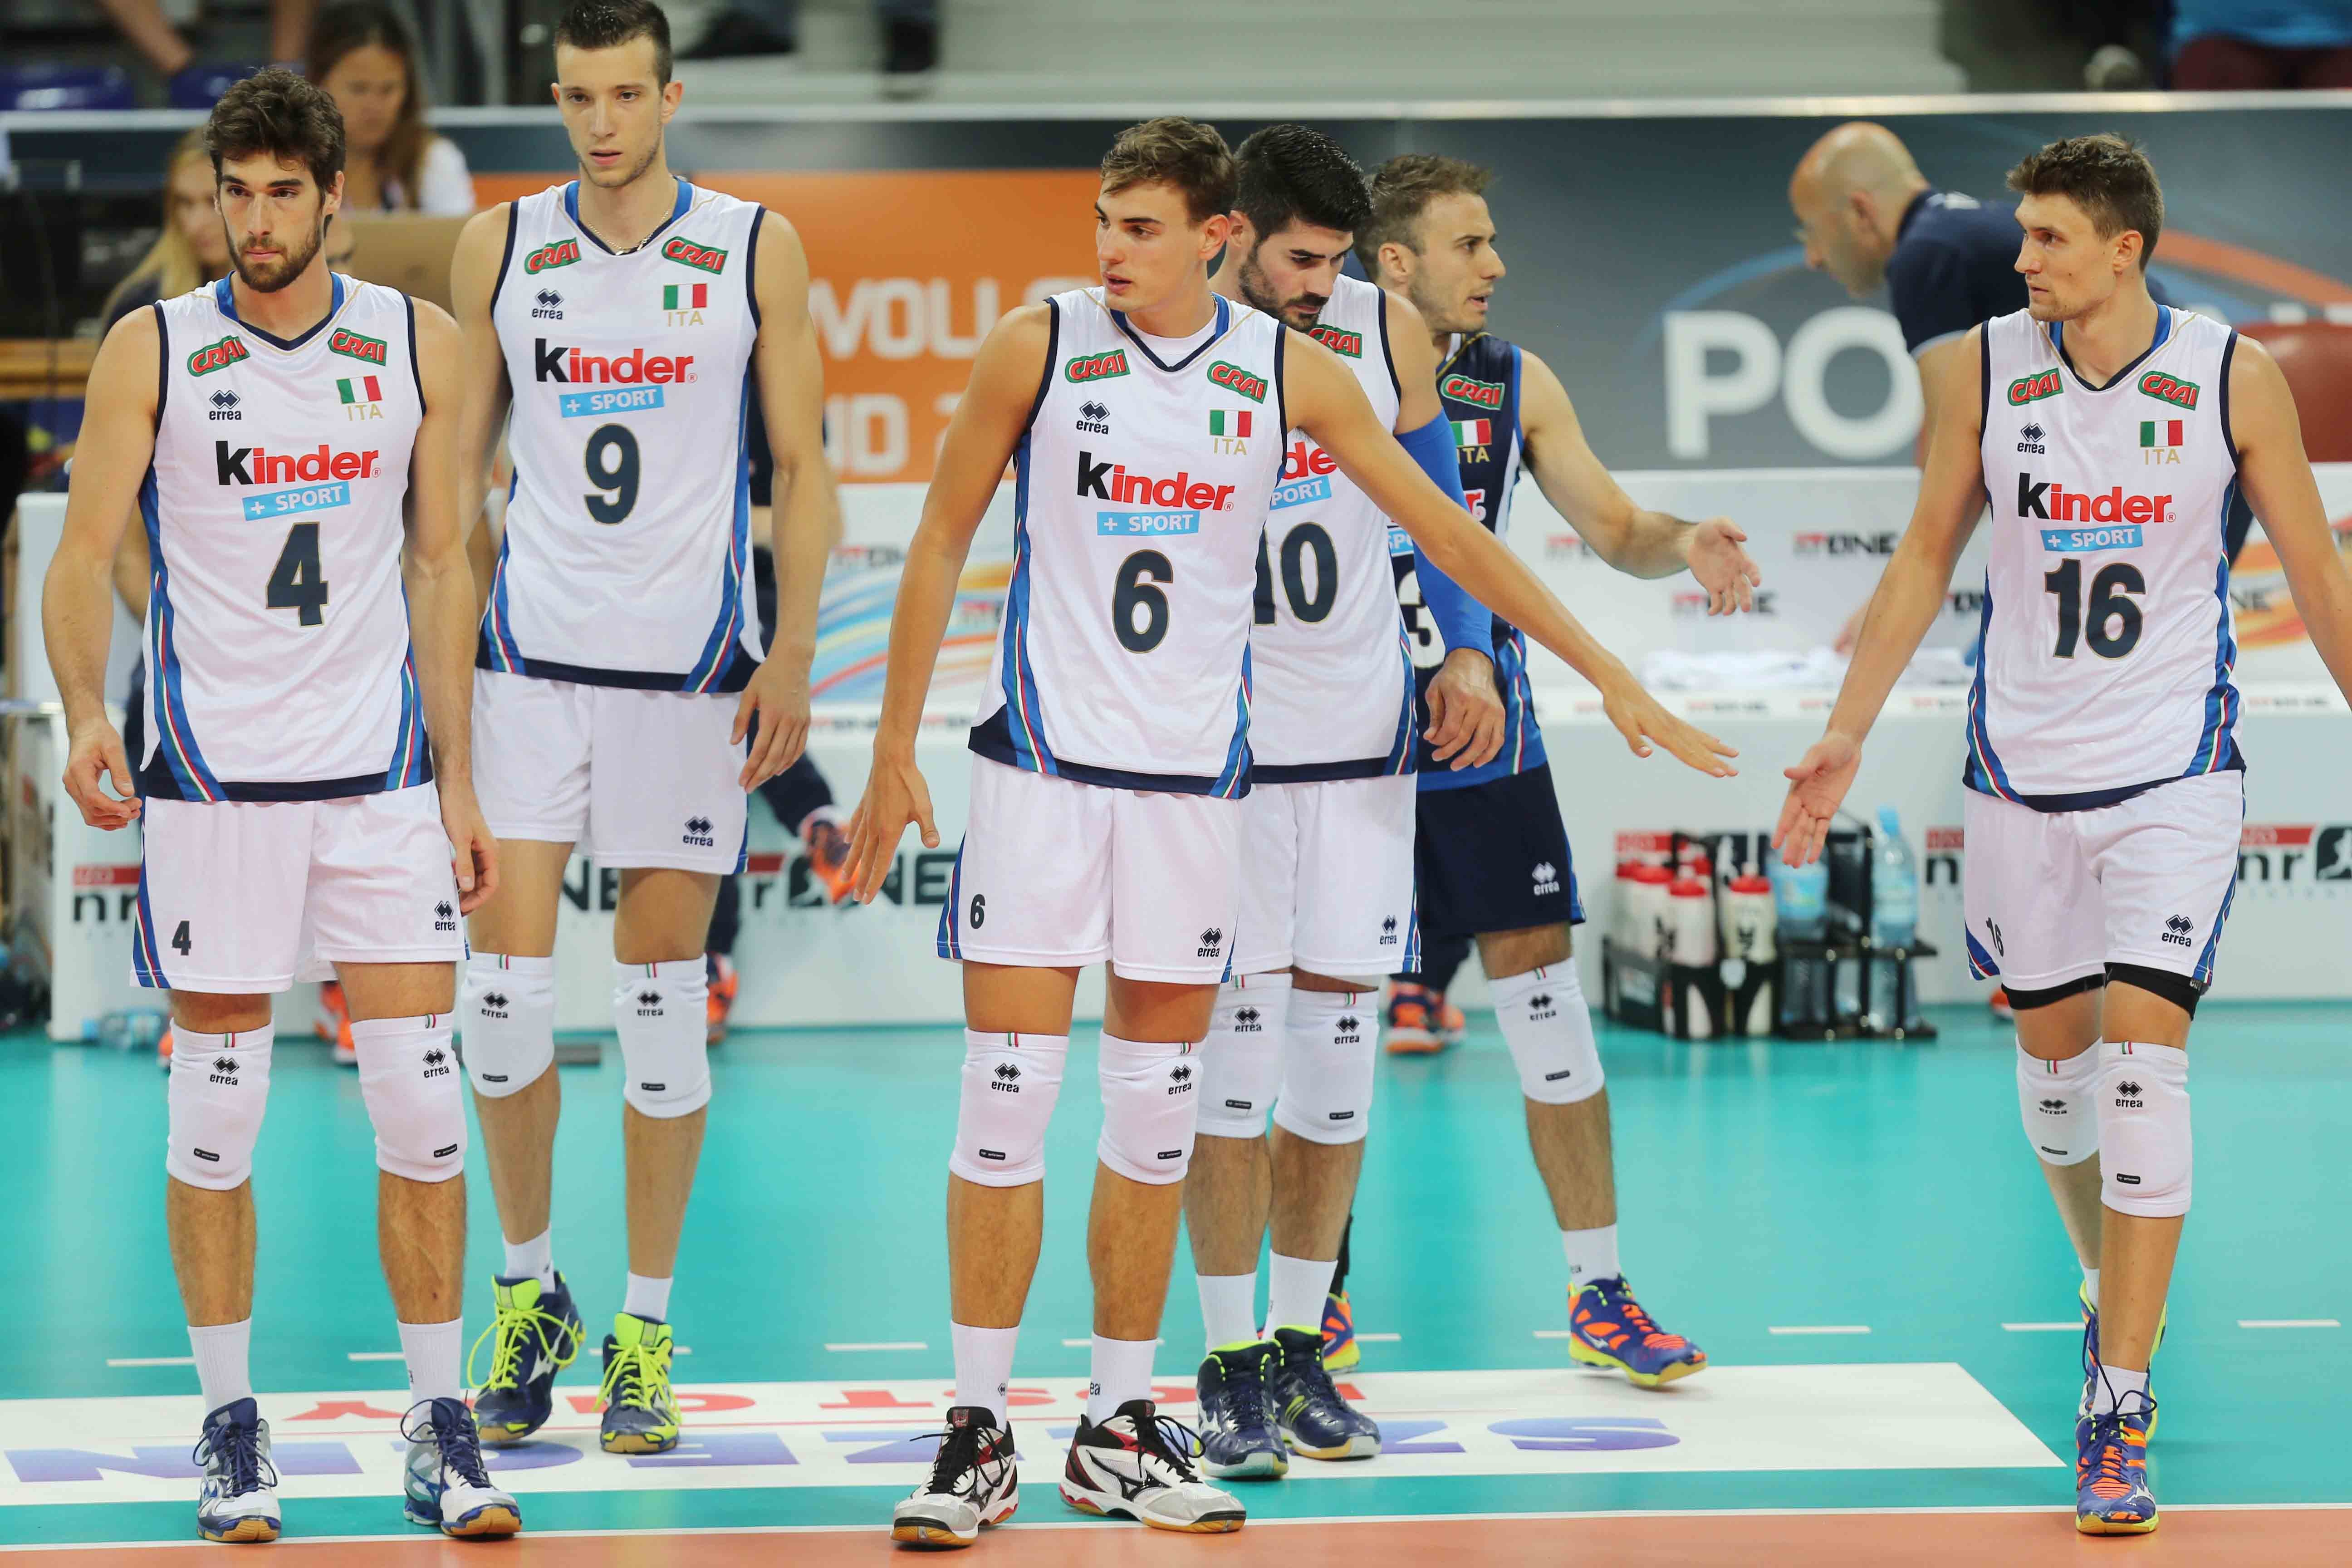 Florence hosts the long-awaited draw for the Men's 2018 World Volleyball Championships